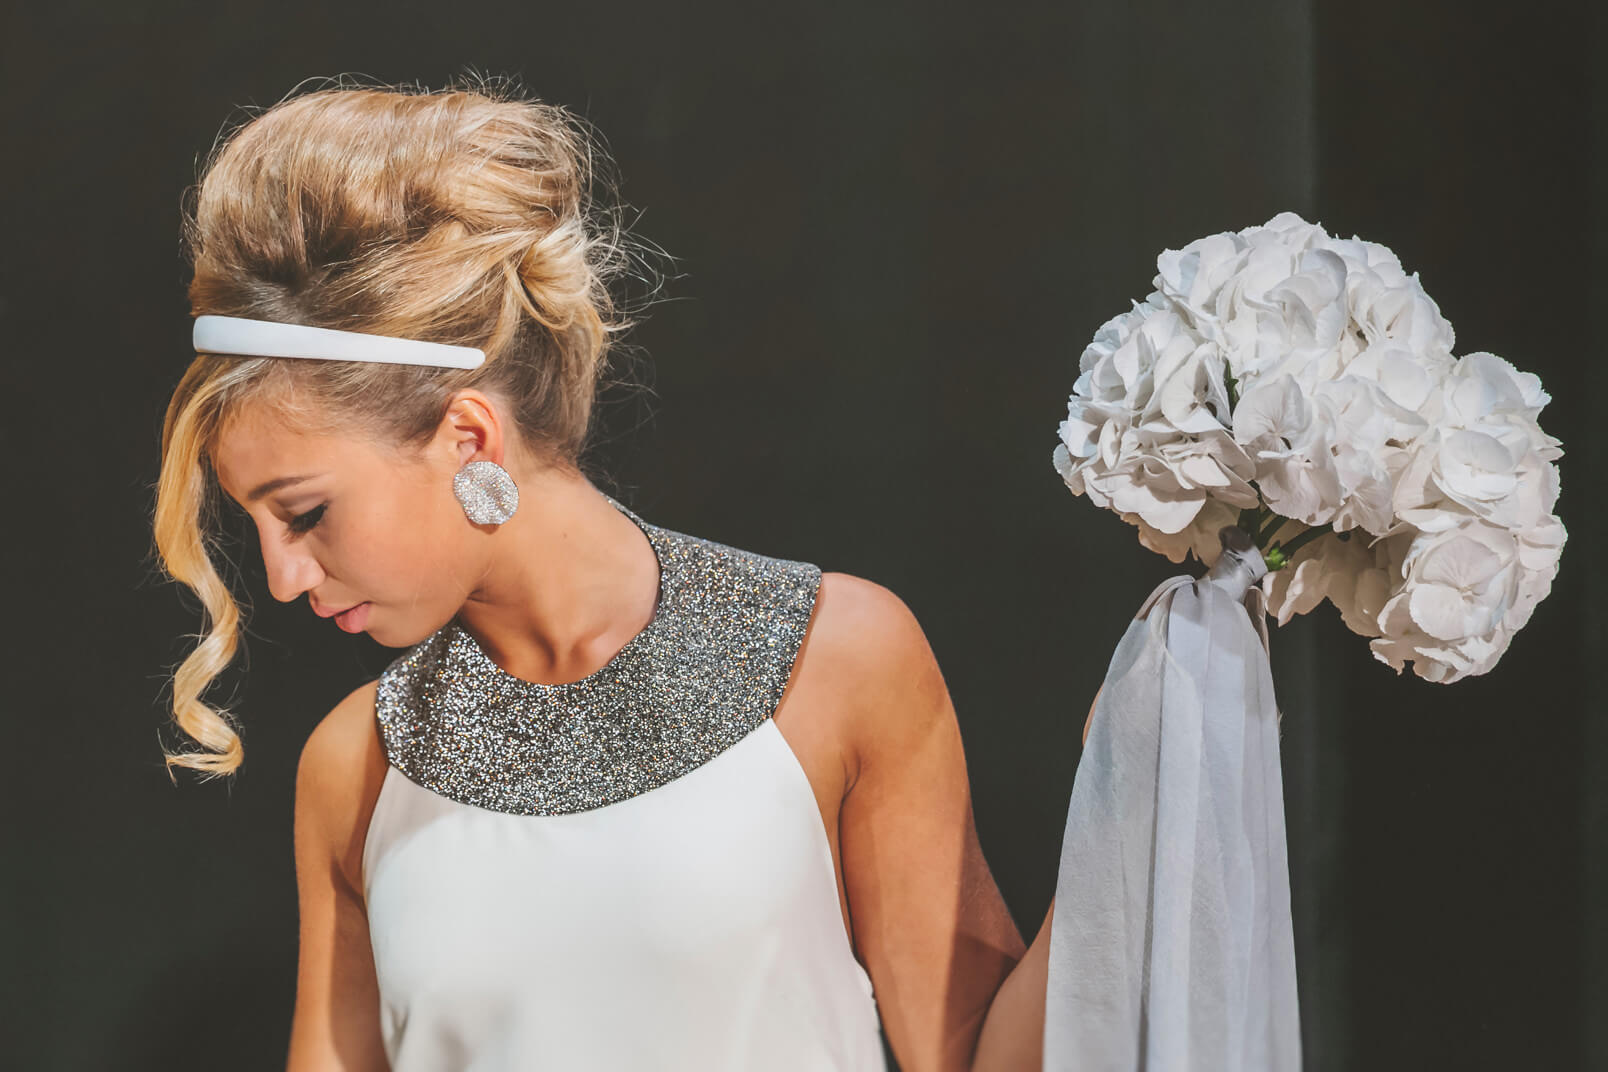 1960s wedding hairstyle from the bride.